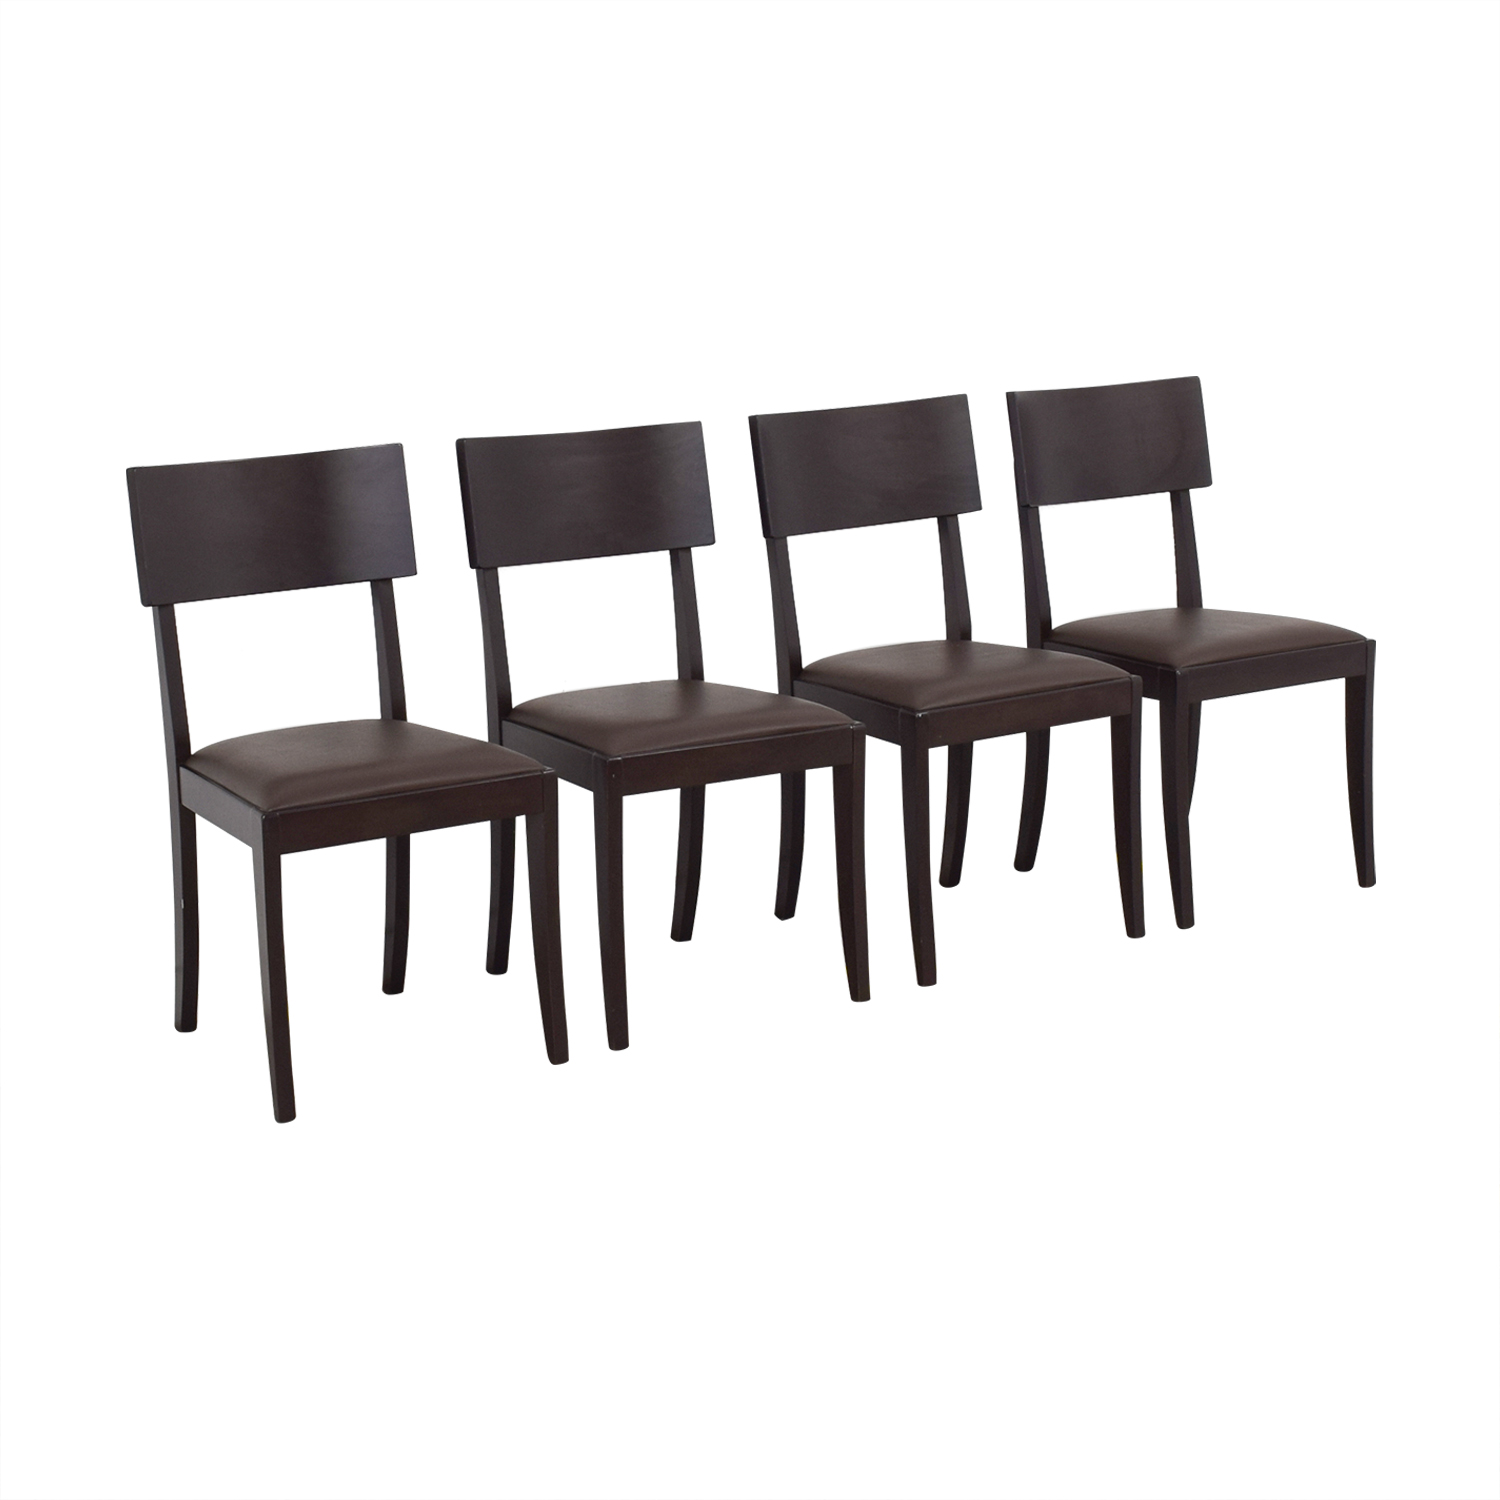 Crate & Barrel Dining Chairs / Dining Chairs